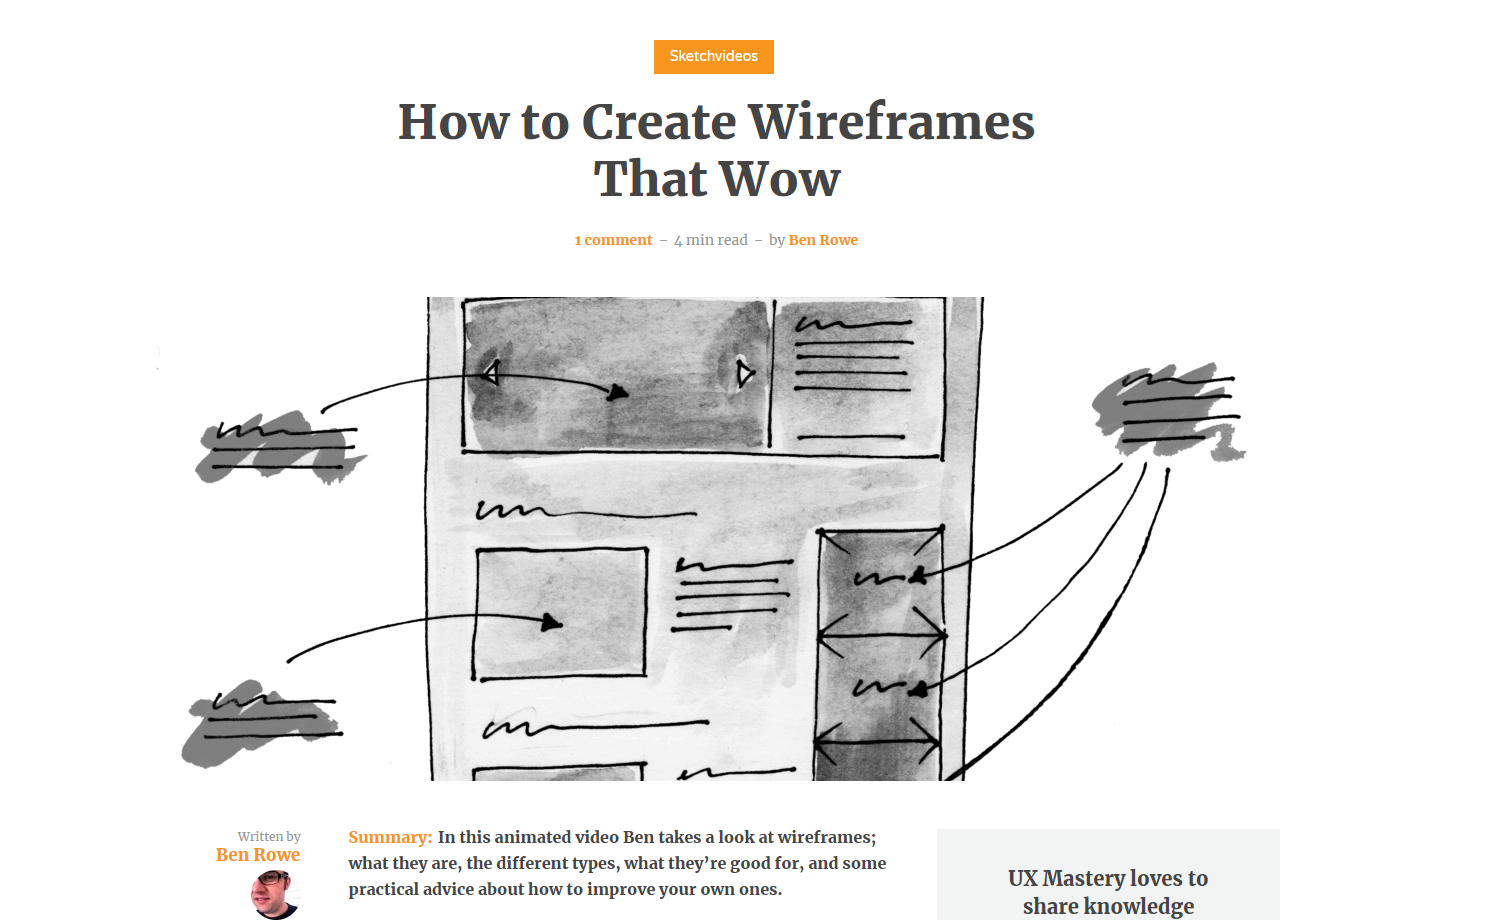 Learn How to Create Wireframes That Wow